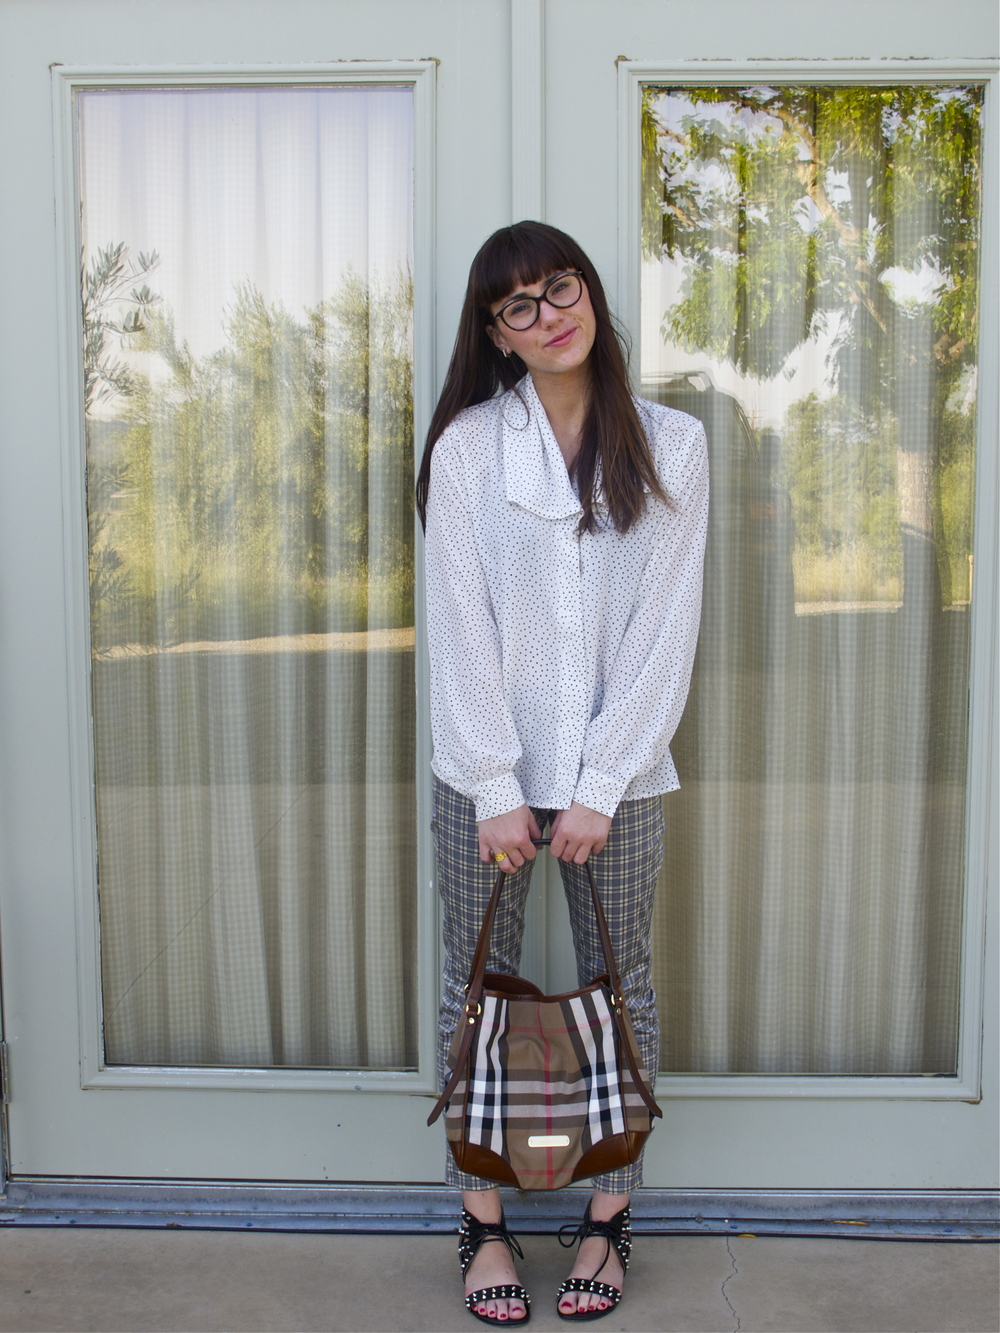 Blouse: Vintage; Plaid Leggings: Uniqlo; Bag: Burberry; Sandals: Mia